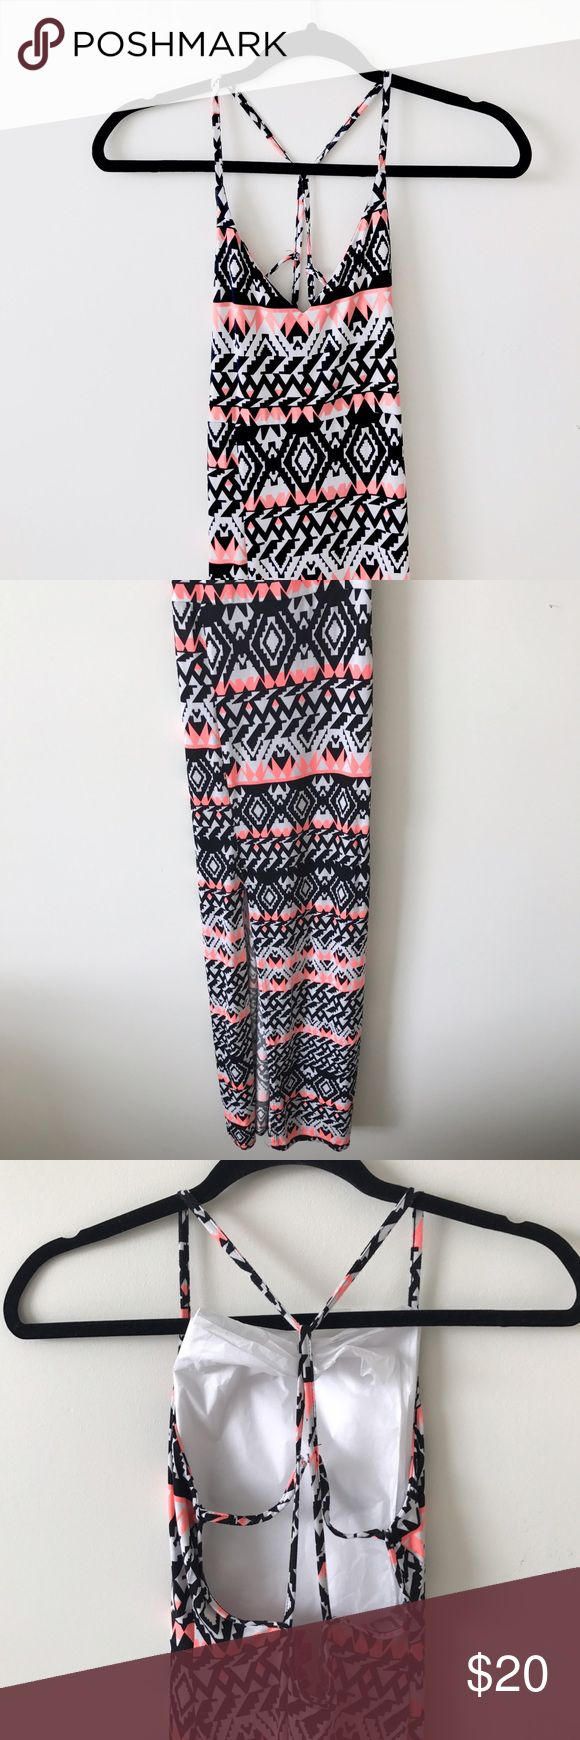 Aztec Print Maxi-dress with Strappy Back Never worn (except for trying on). I am 4'11 and it hits me right above my toes. Perfect fit! UK 4. US 0 Boohoo Petite Dresses Maxi